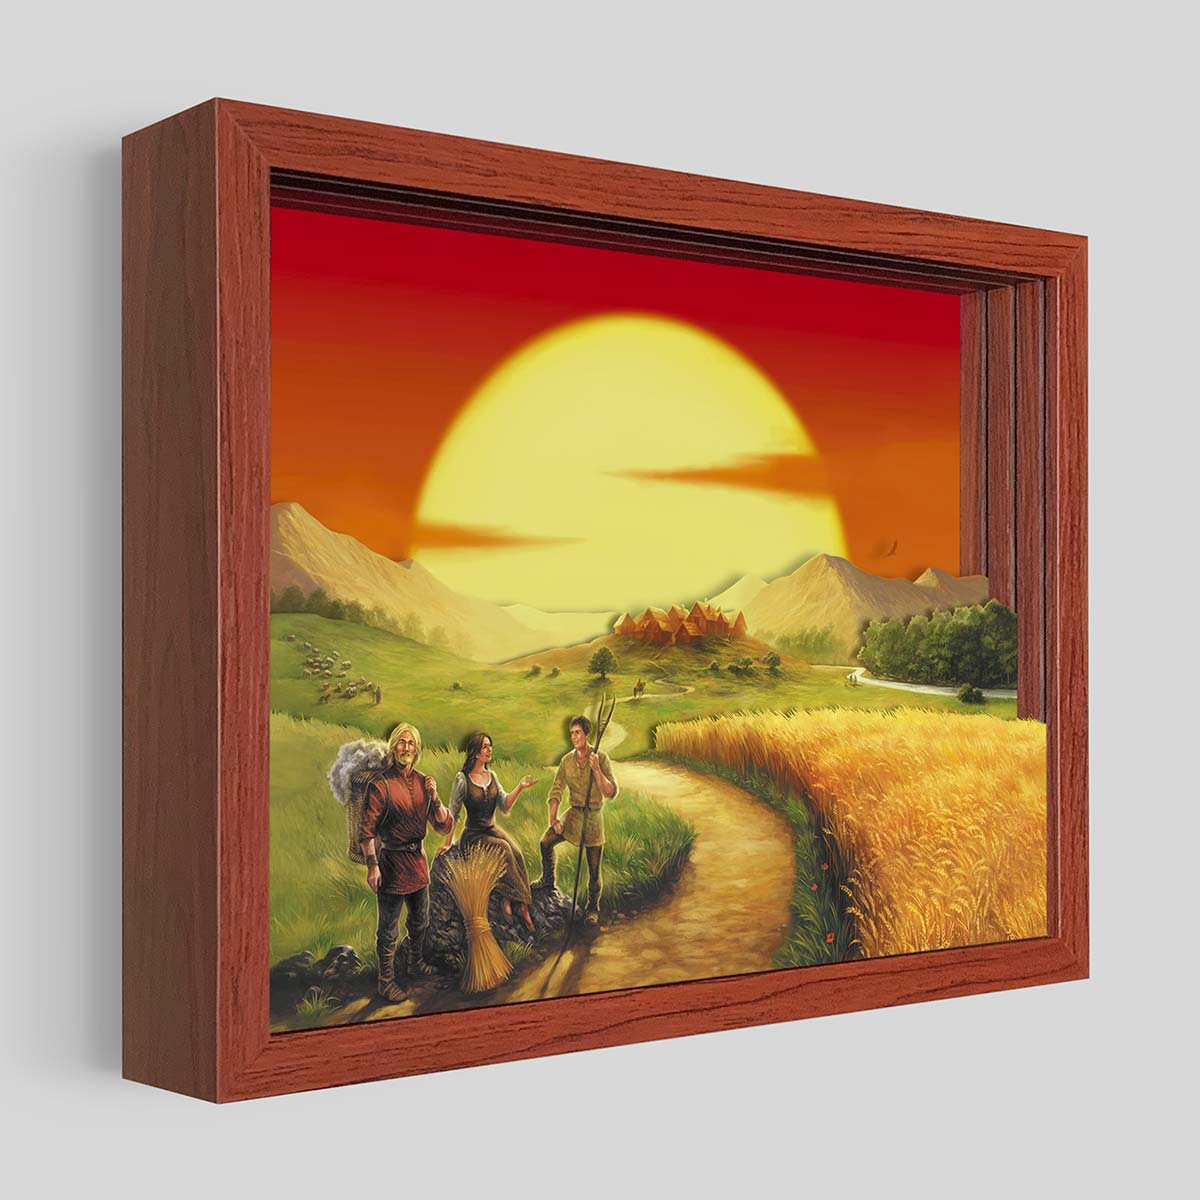 CATAN Shadowbox Art